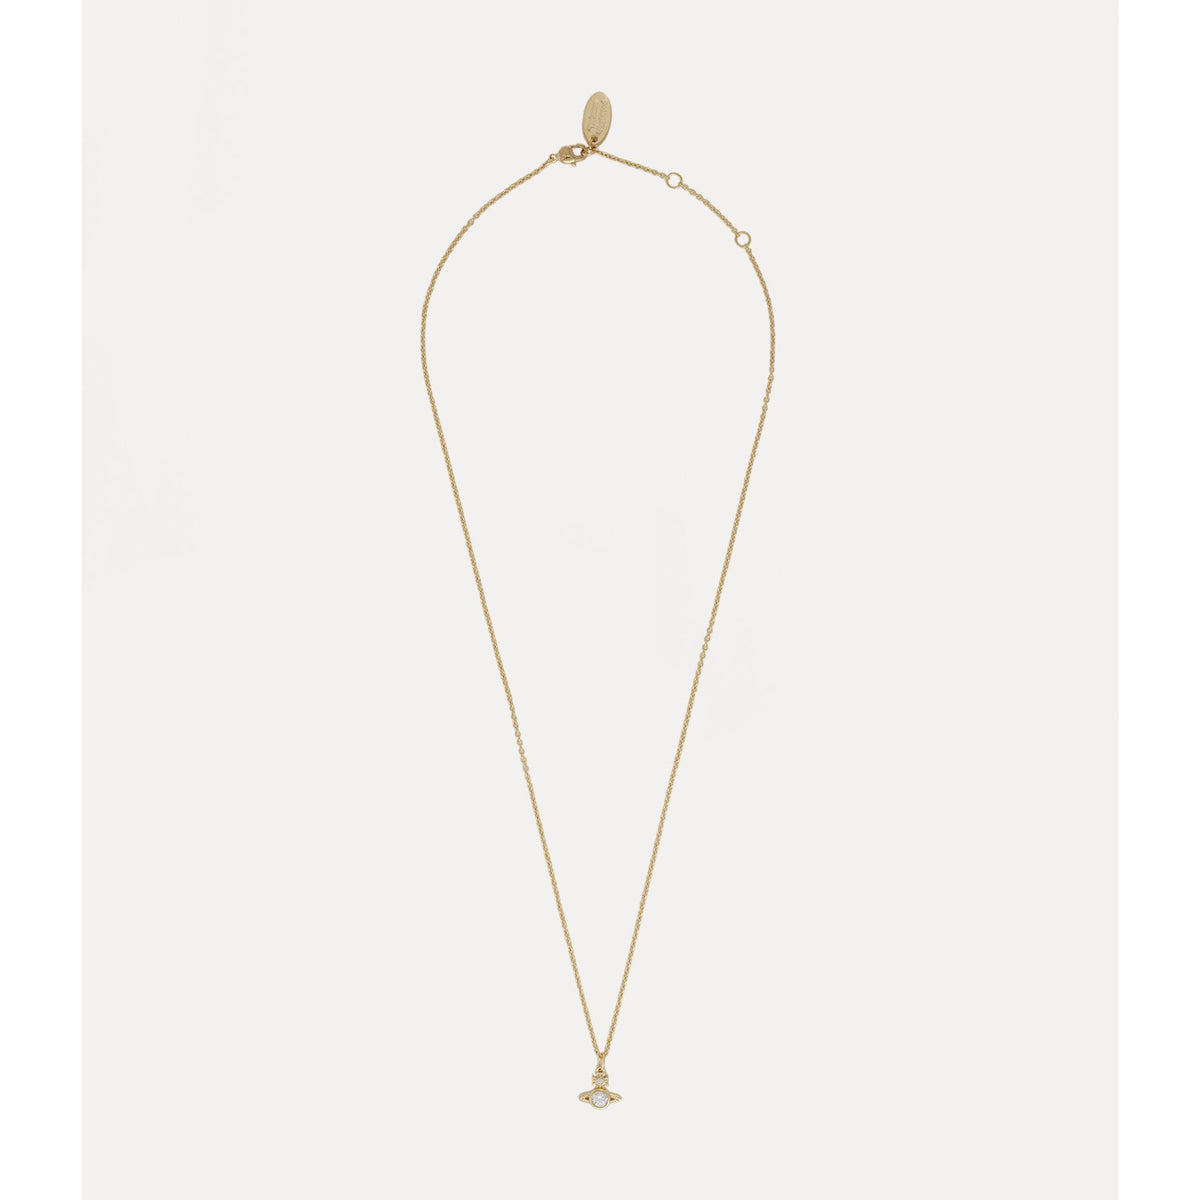 VIVIENNE WESTWOOD JEWELLERY LONDON ORB PENDANT GOLD